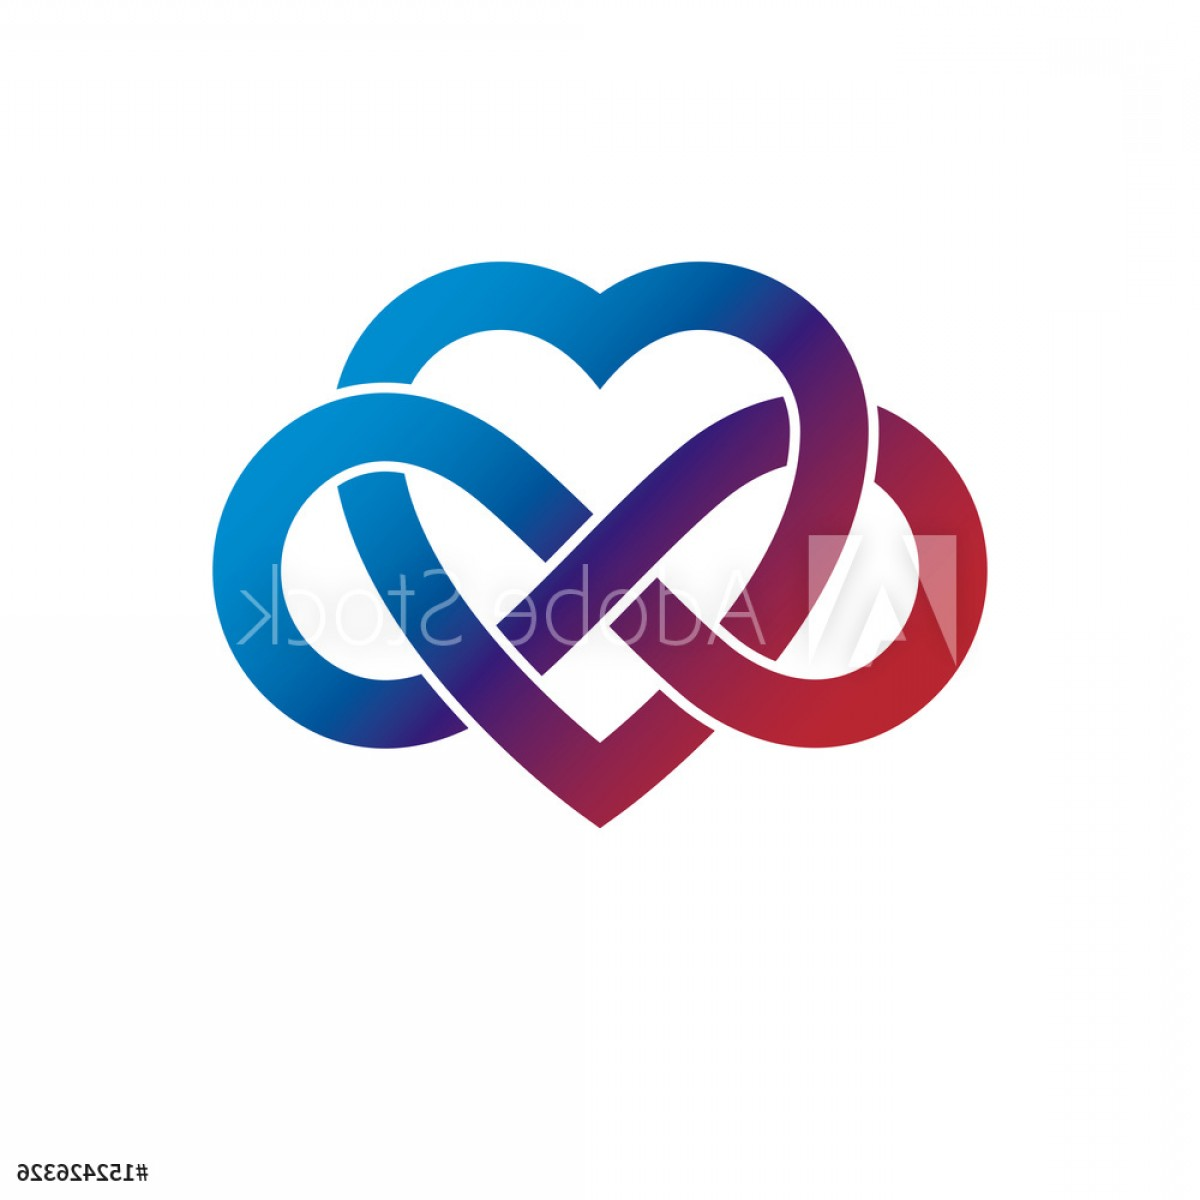 Vector Infinity Symbol Hearts: Infinite Love Concept Vector Symbol Created With Infinity Loop Sign And Heart F